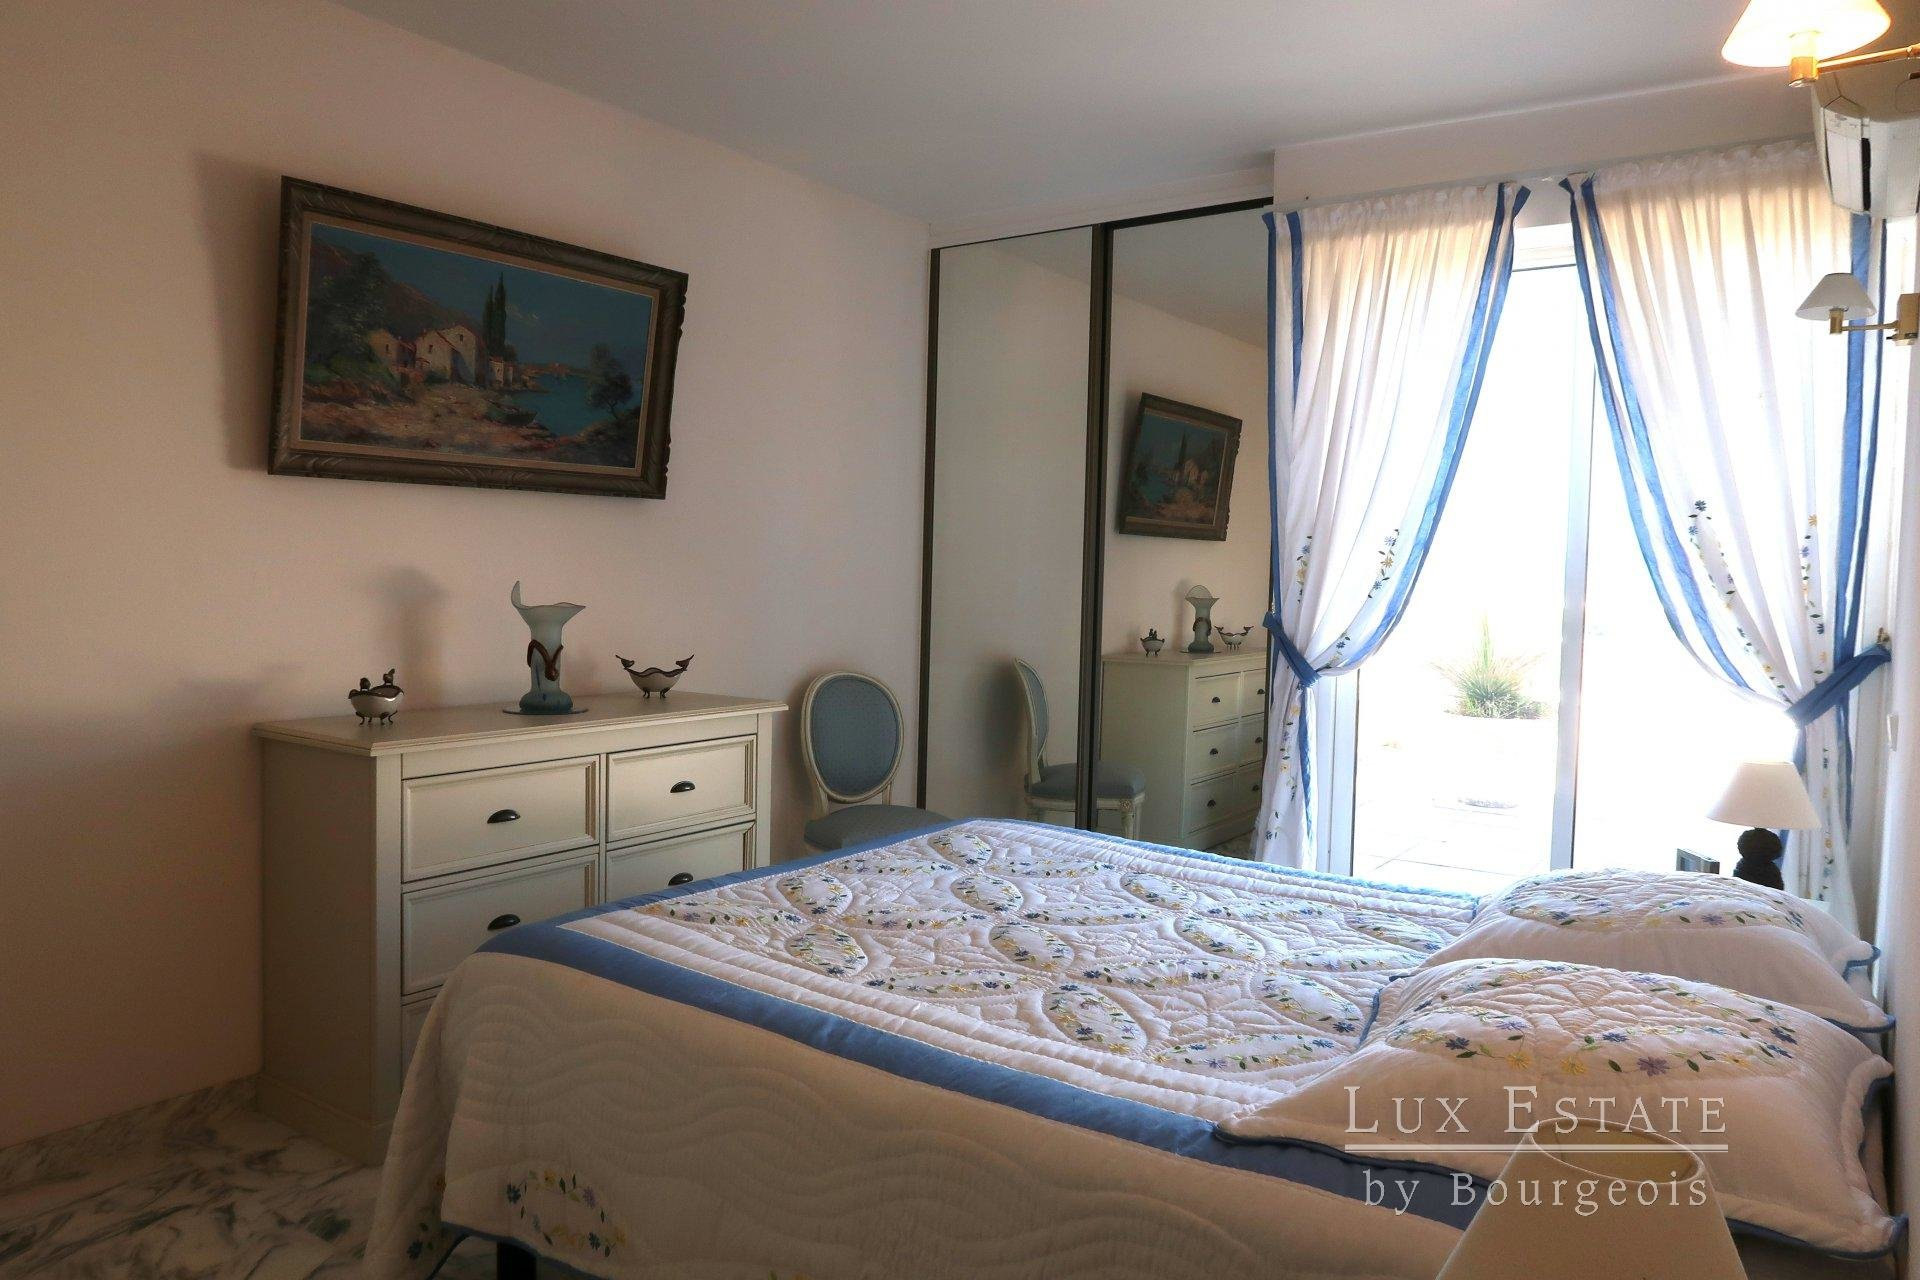 Le Cannet in a secured condo, furnished  2-room flat with a wide terrace overlooking the sea